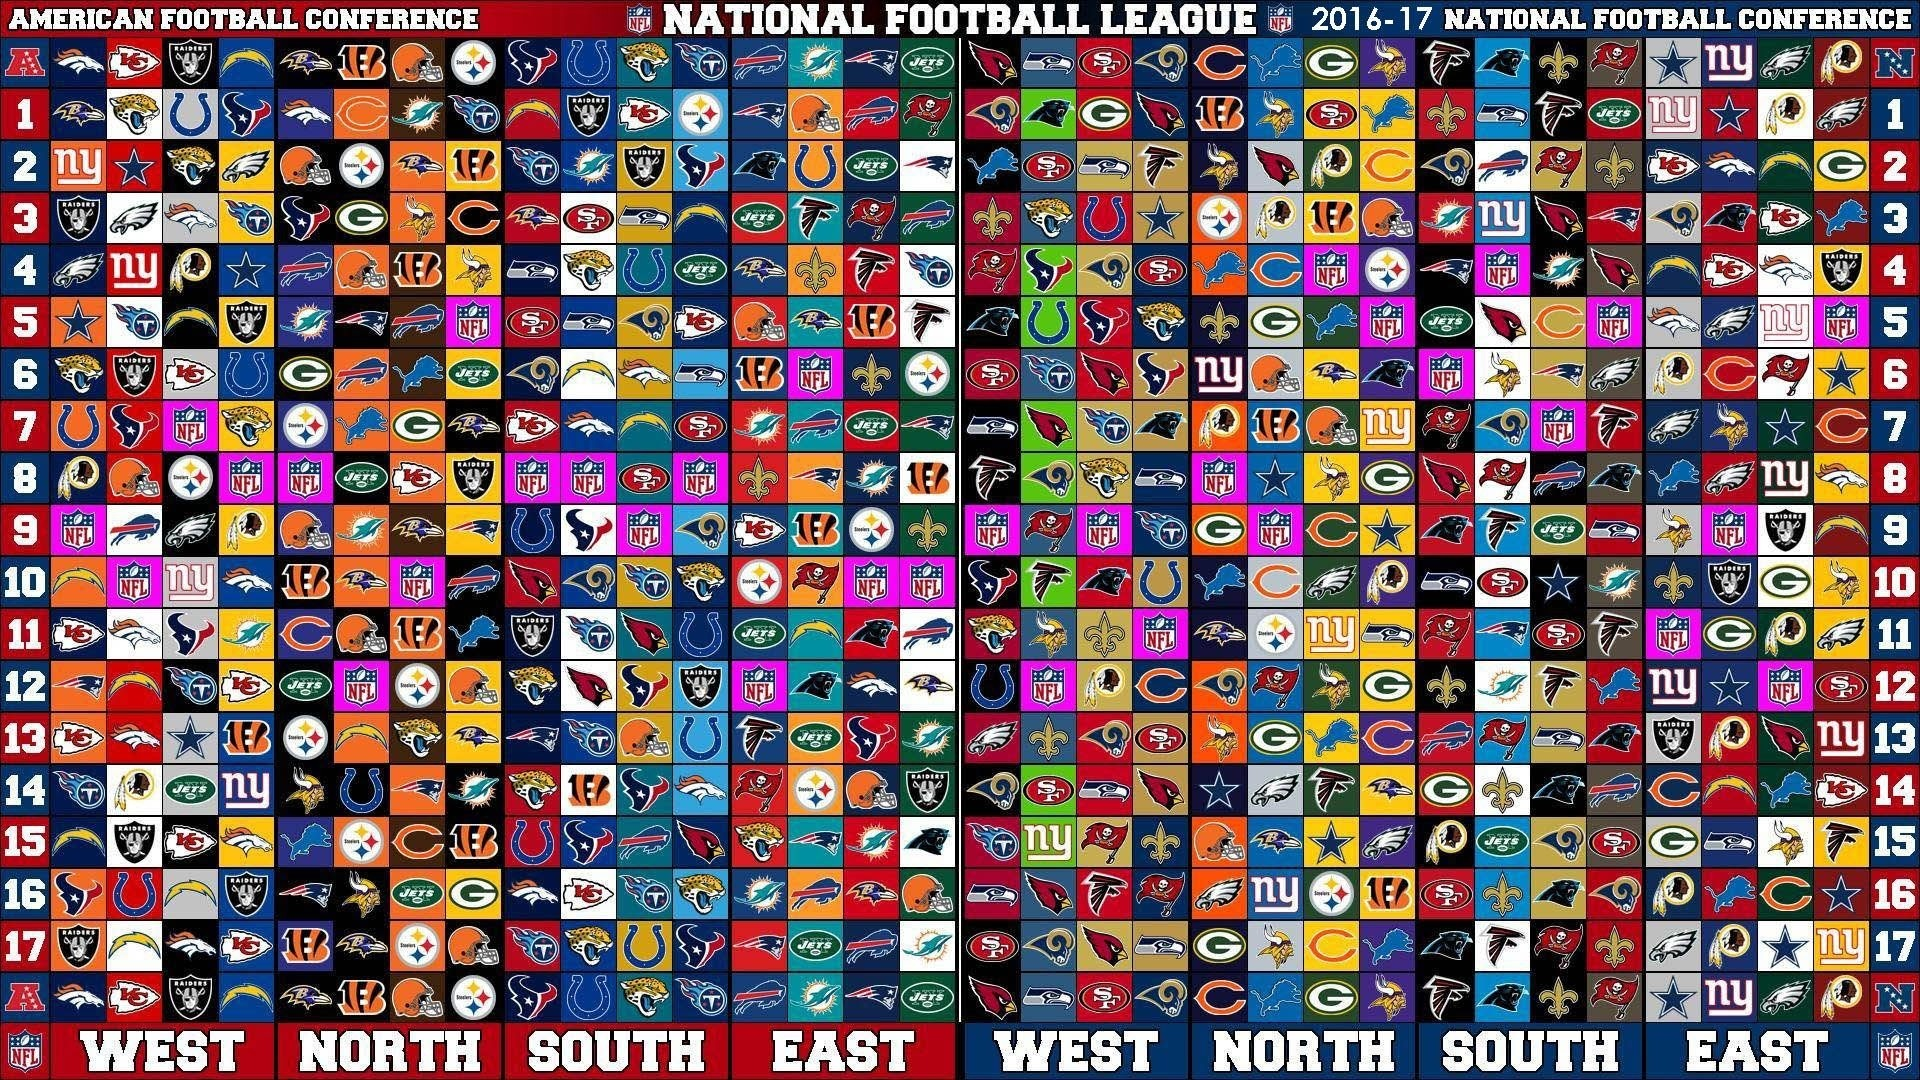 1920x1080 Nfl Teams Wallpapers 2016 Wallpaper Cave Nfl Live Wallpaper 2017